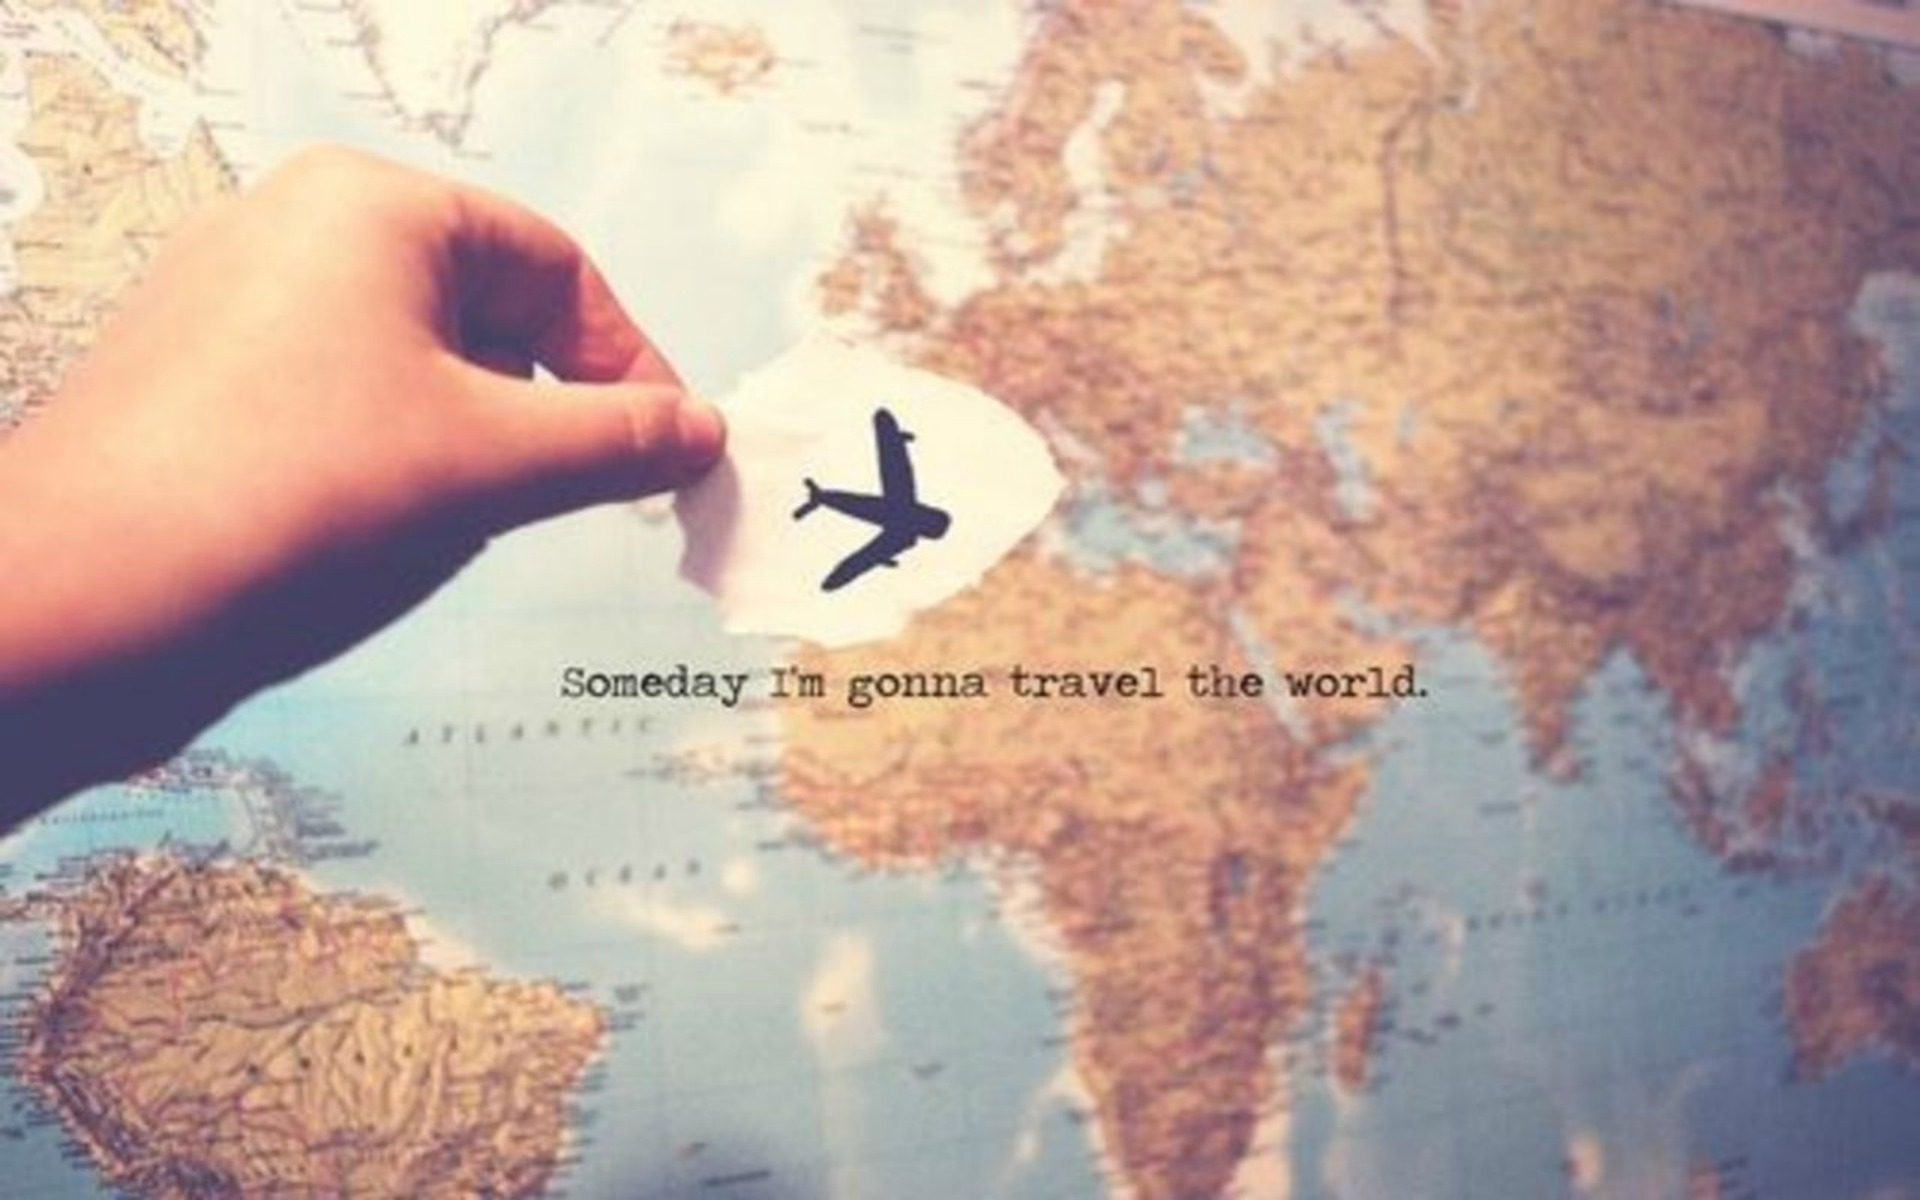 Travel Alone Quotes 20 Reasons Why You Should Travel Alone